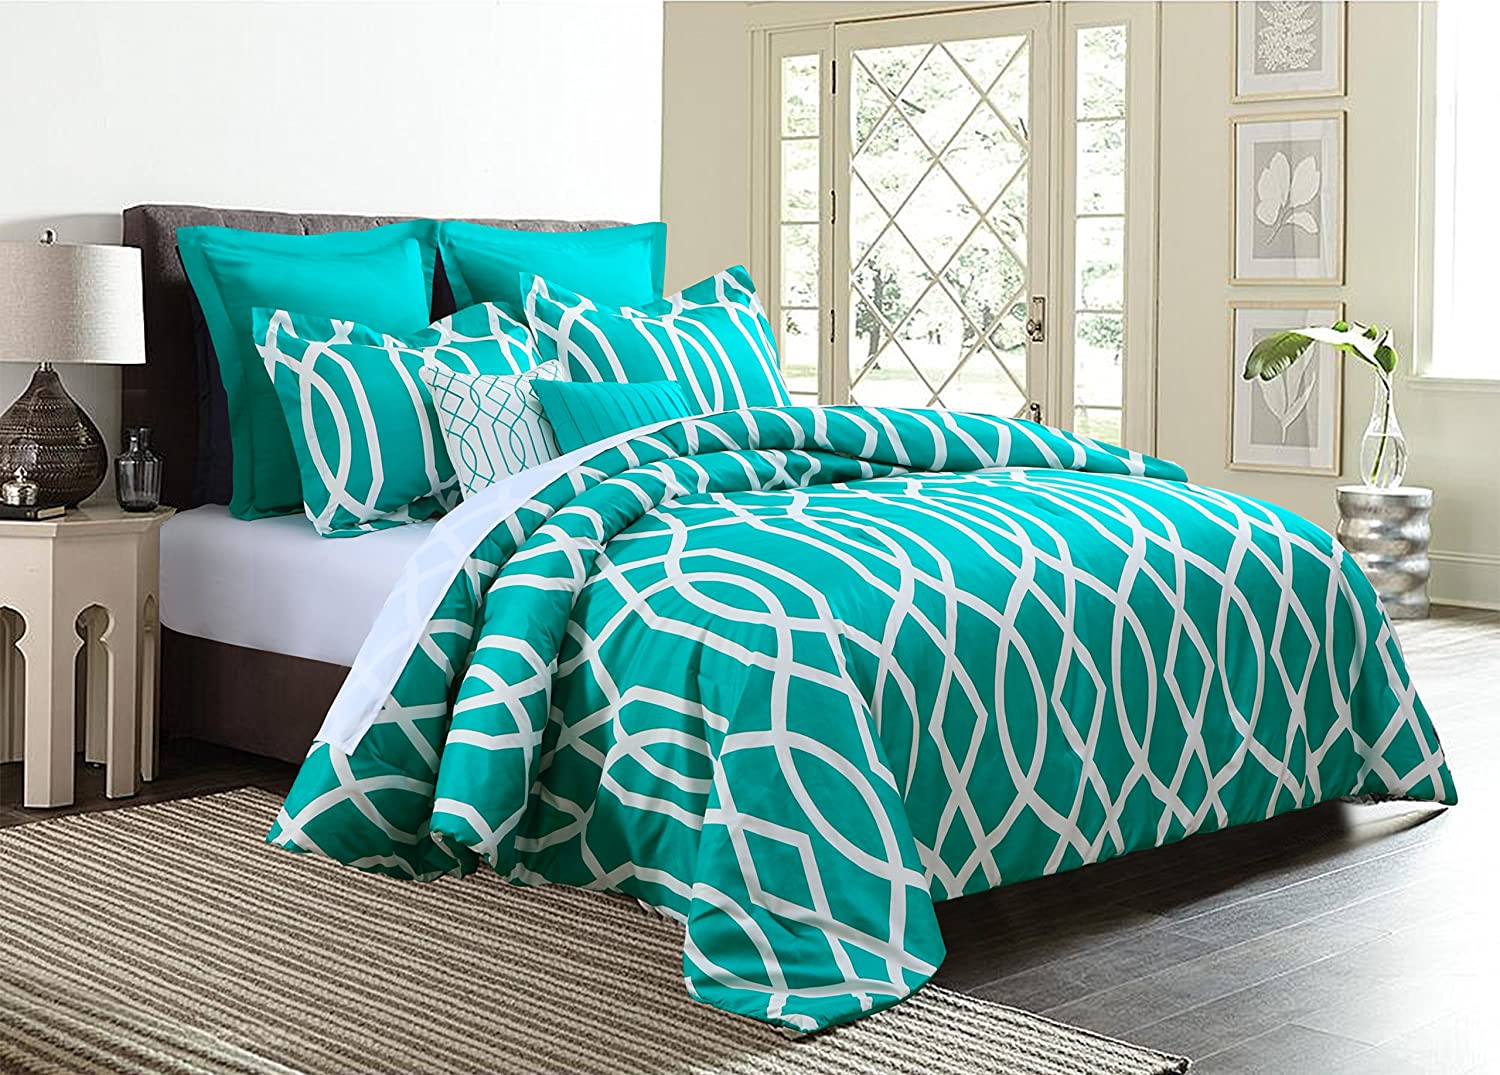 EMPIRE Home Anbu Modern 7 Piece Comforter Set (Full Size, Teal Blue)